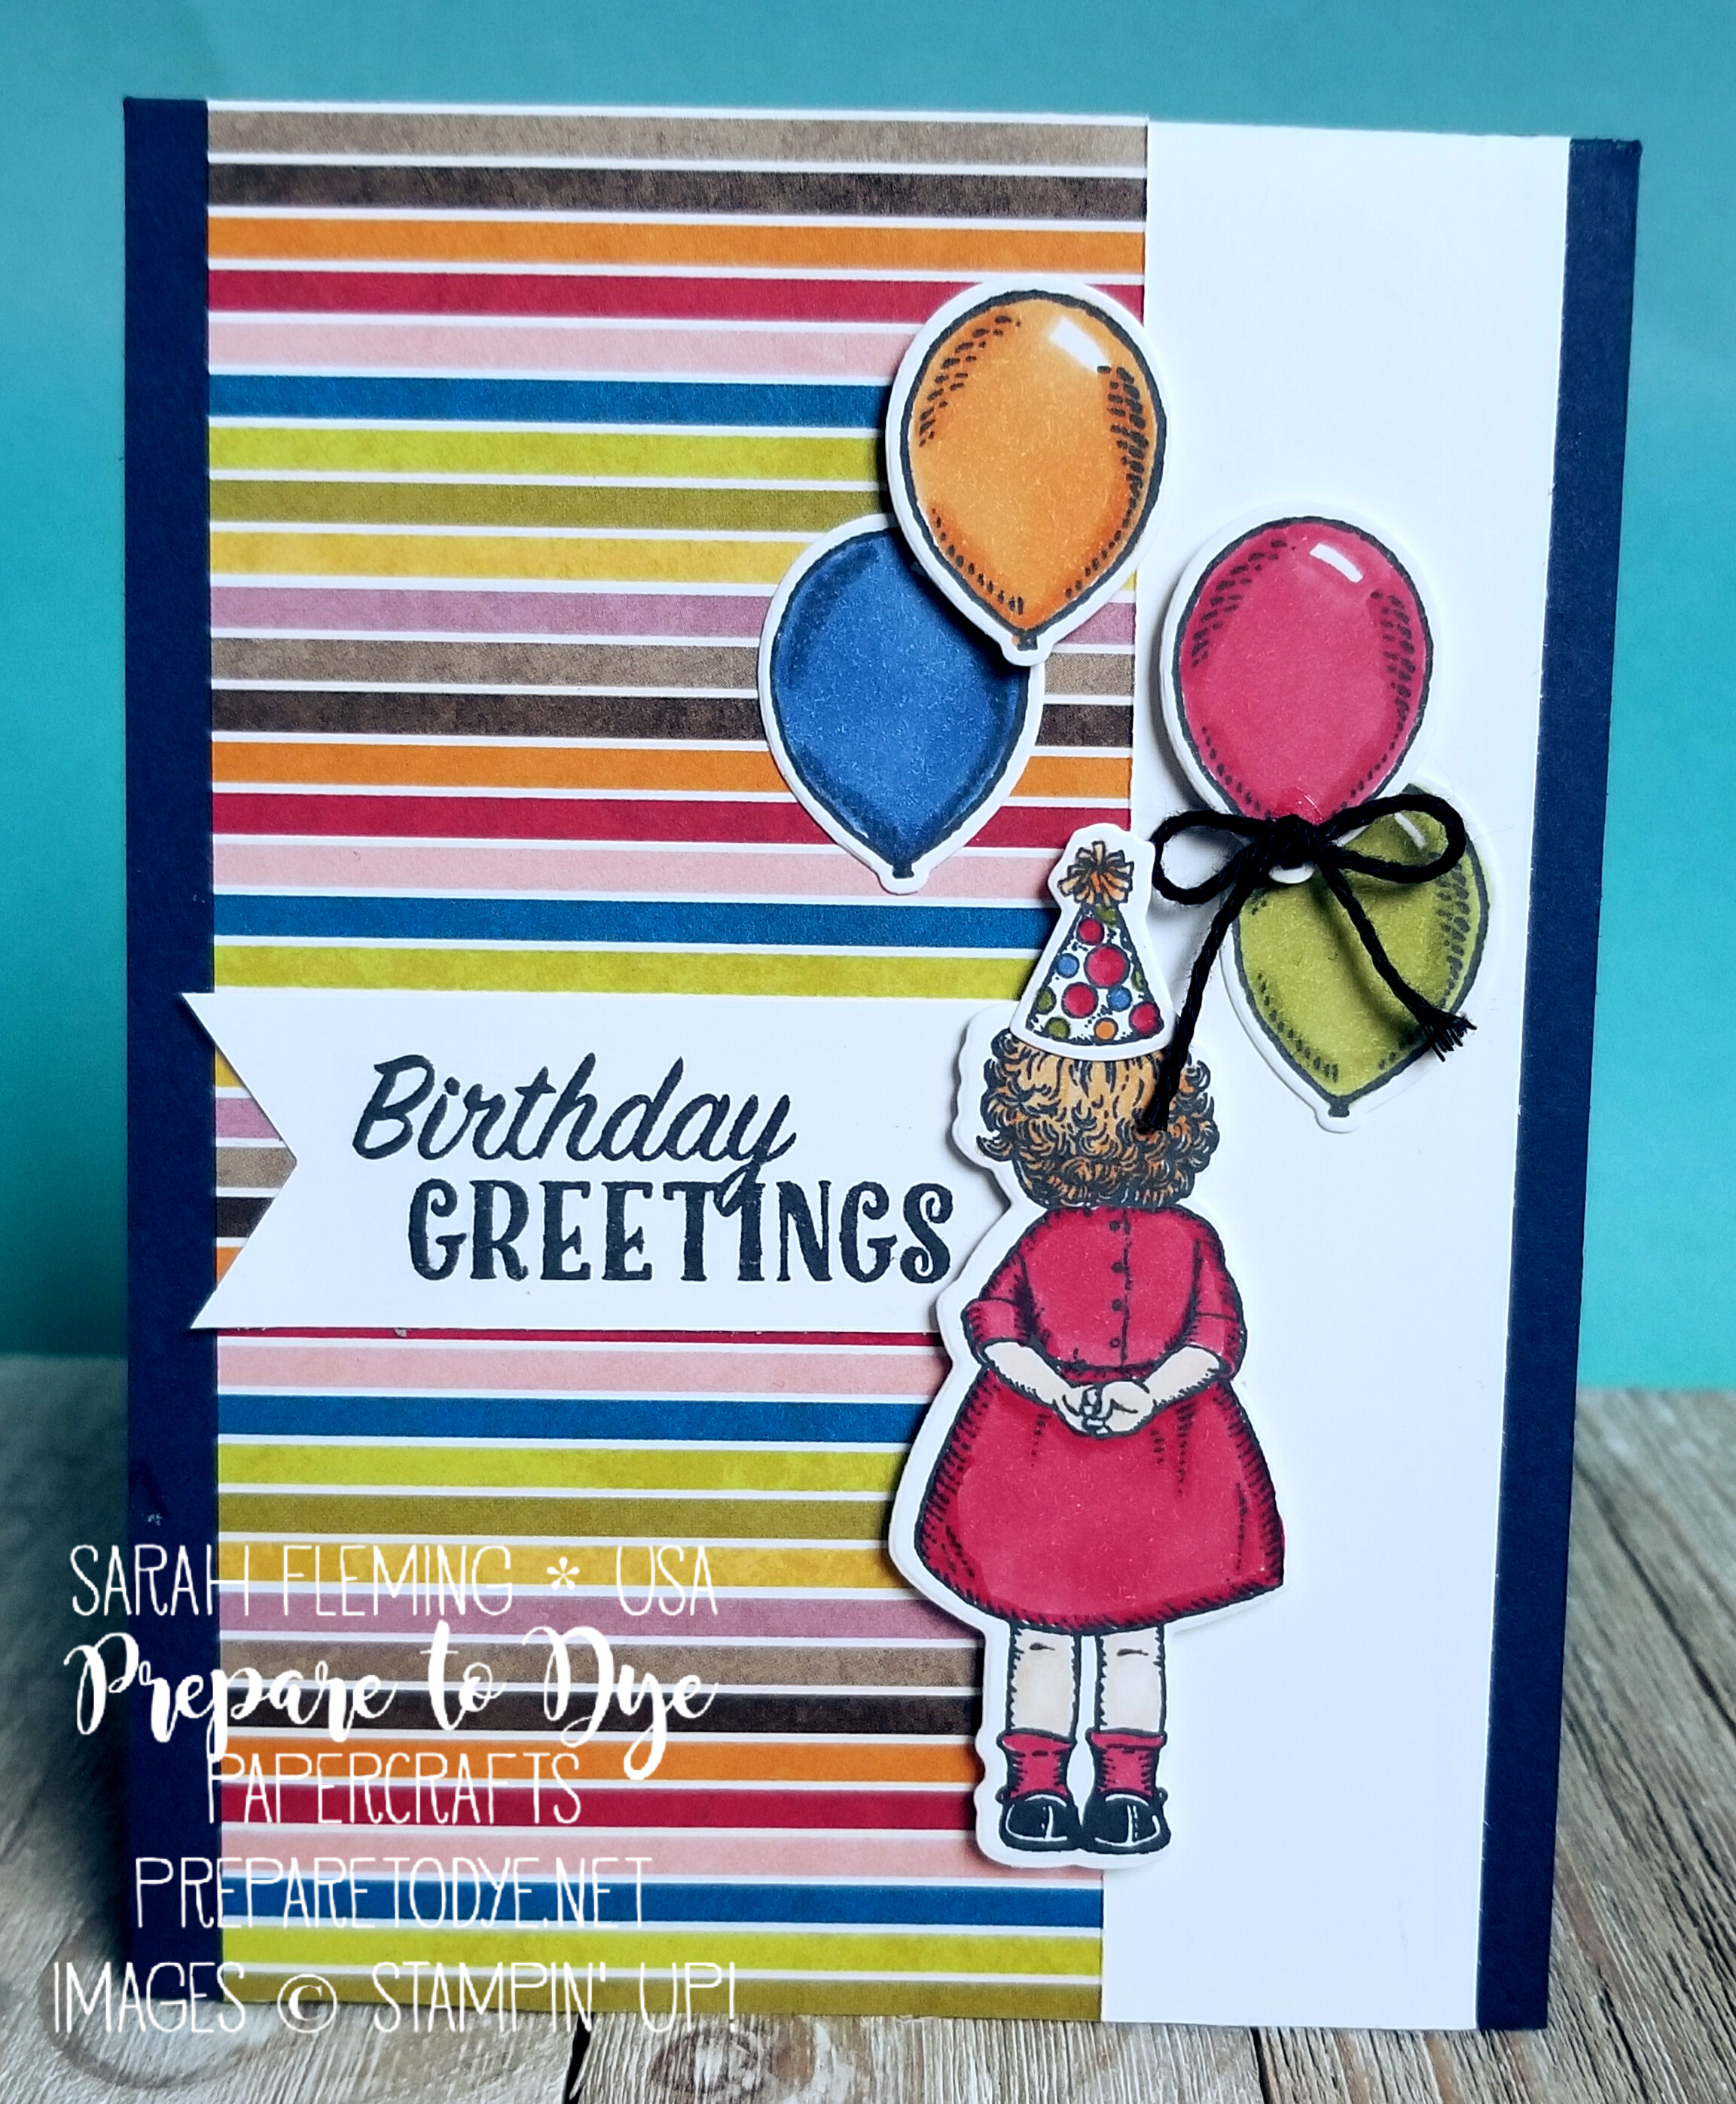 Stampin' Up! Stampin' Blends Marker Club with Birthday Delivery stamps - Sarah Fleming - Prepare to Dye Papercrafts